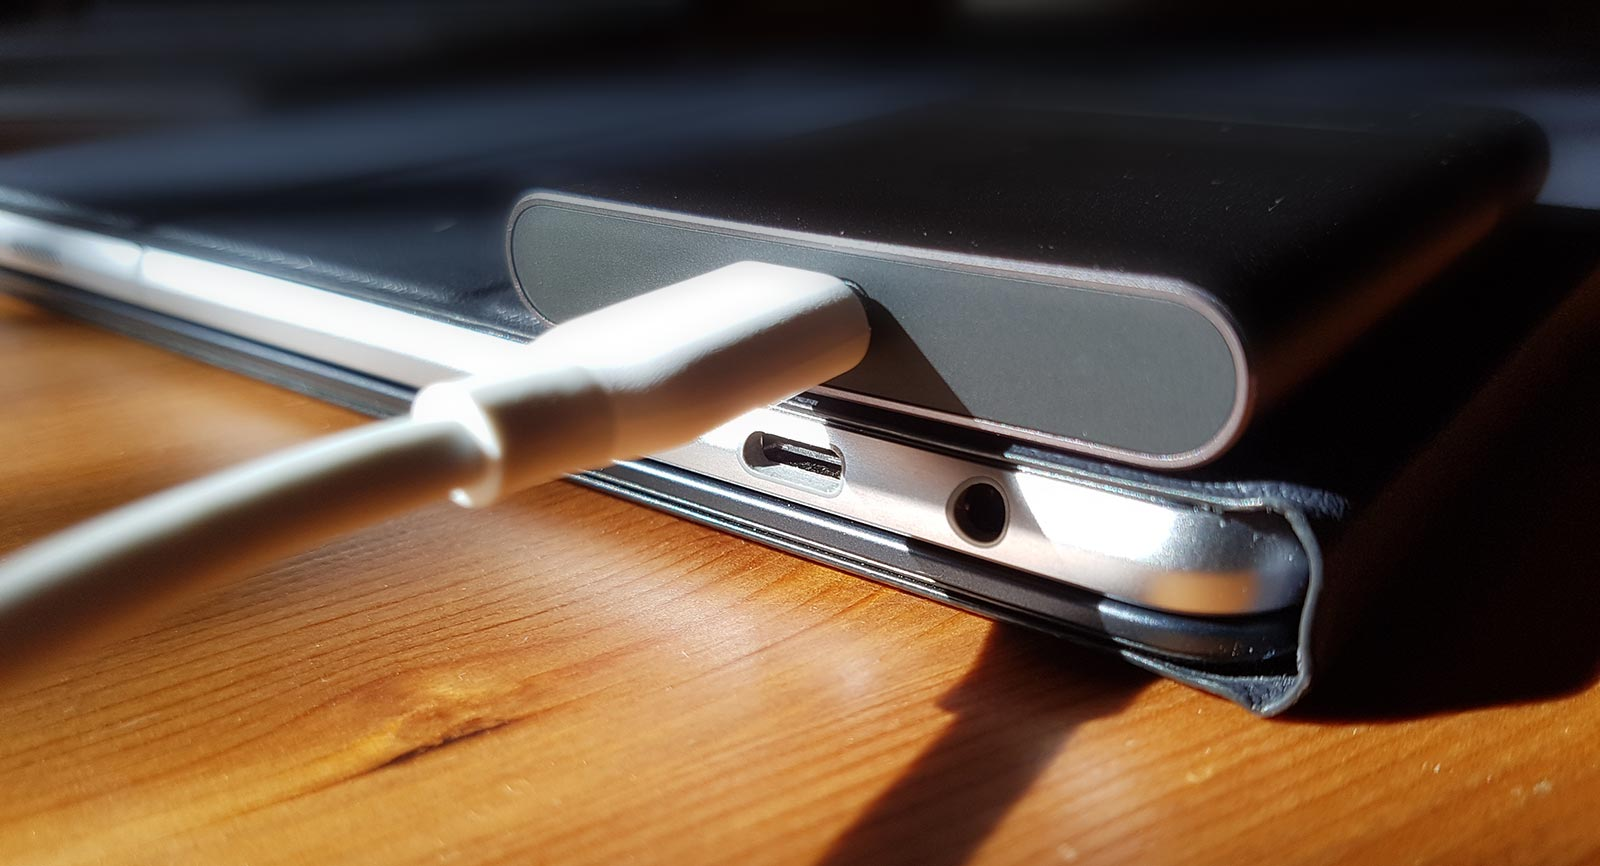 Both the hard drive and the tablet beneath rely on the same USB Type C port technology.